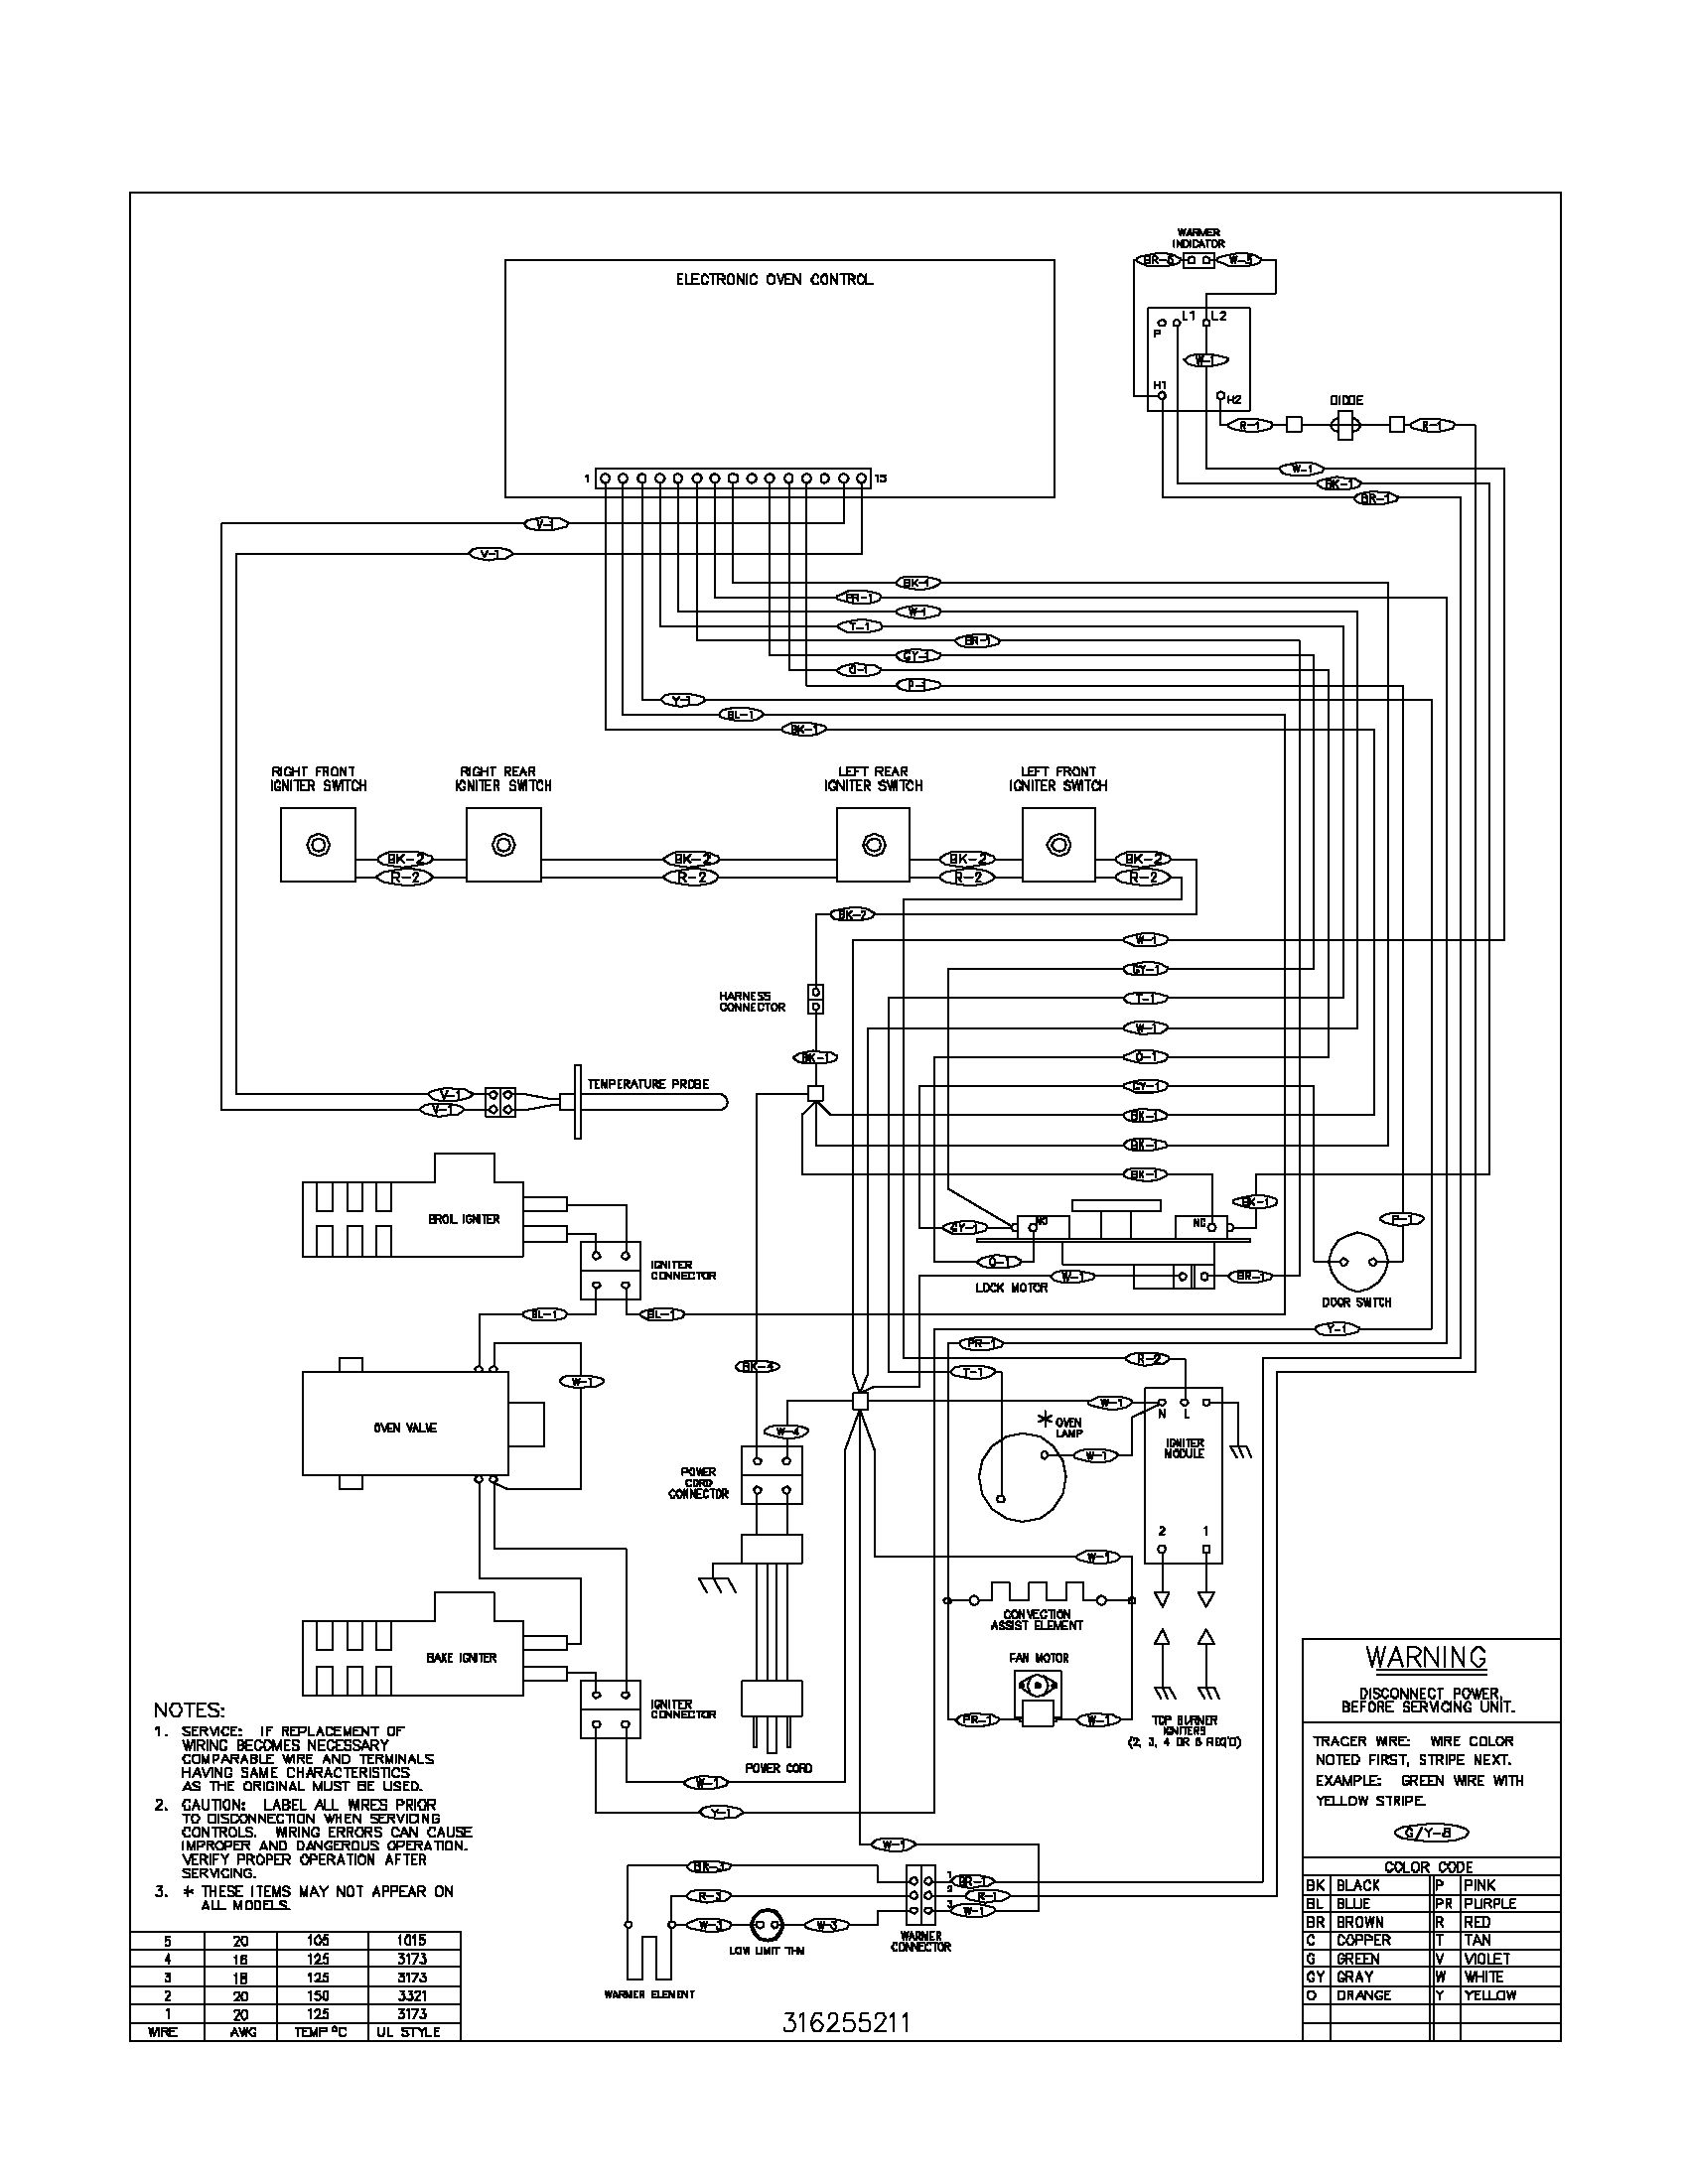 wiring diagram parts 100 [ kenmore dishwasher wiring diagram ] kenmore whirlpool wiring diagram for kenmore refrigerator at gsmx.co